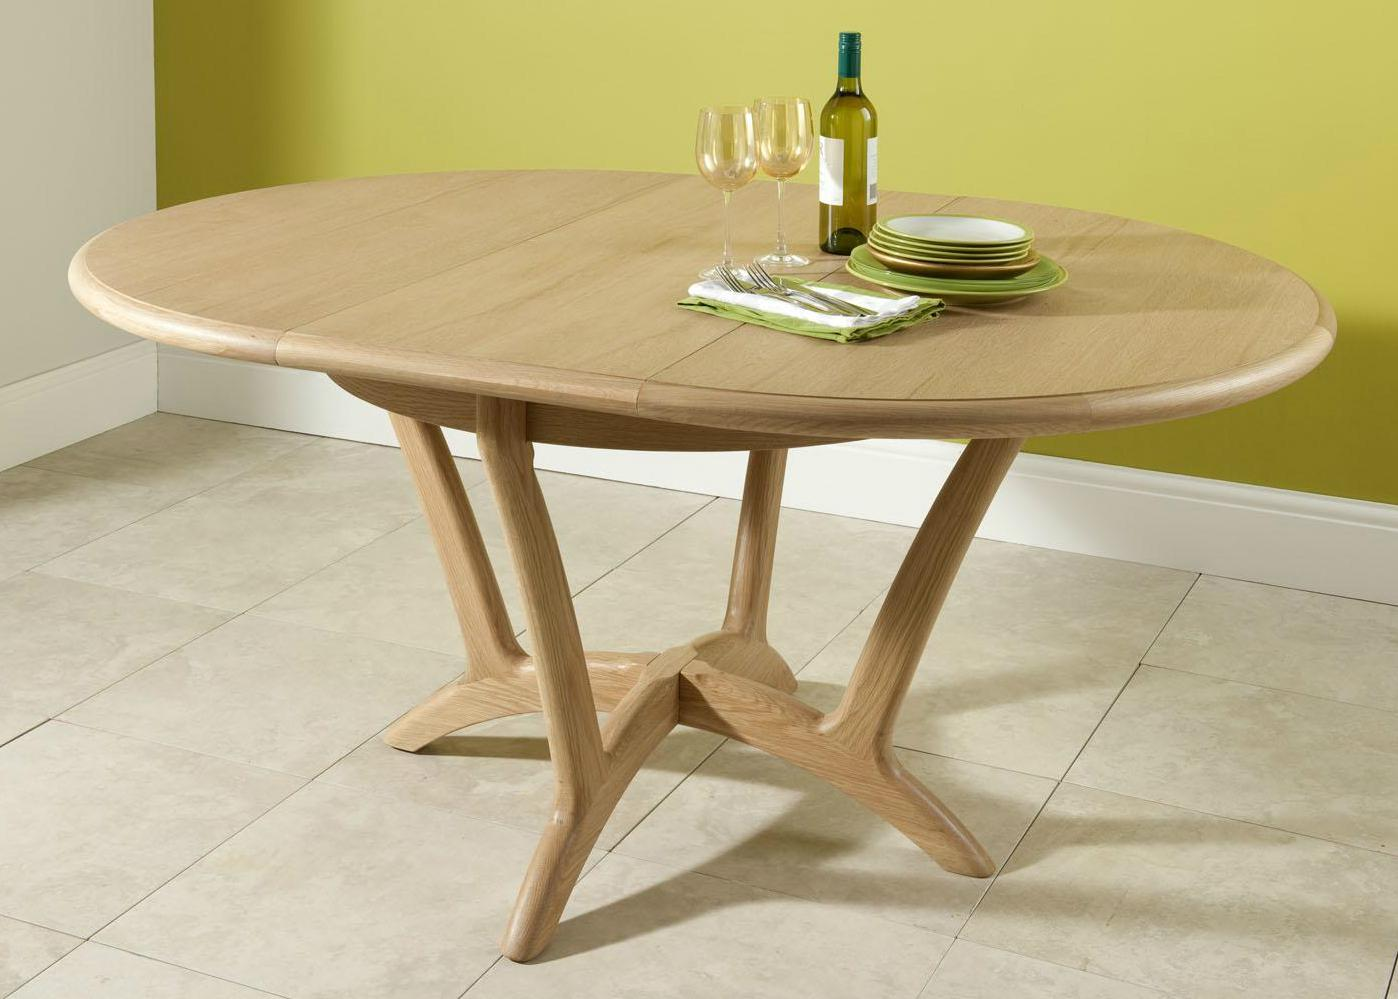 Stockholm oval extending dining table from tannahill furniture ltd